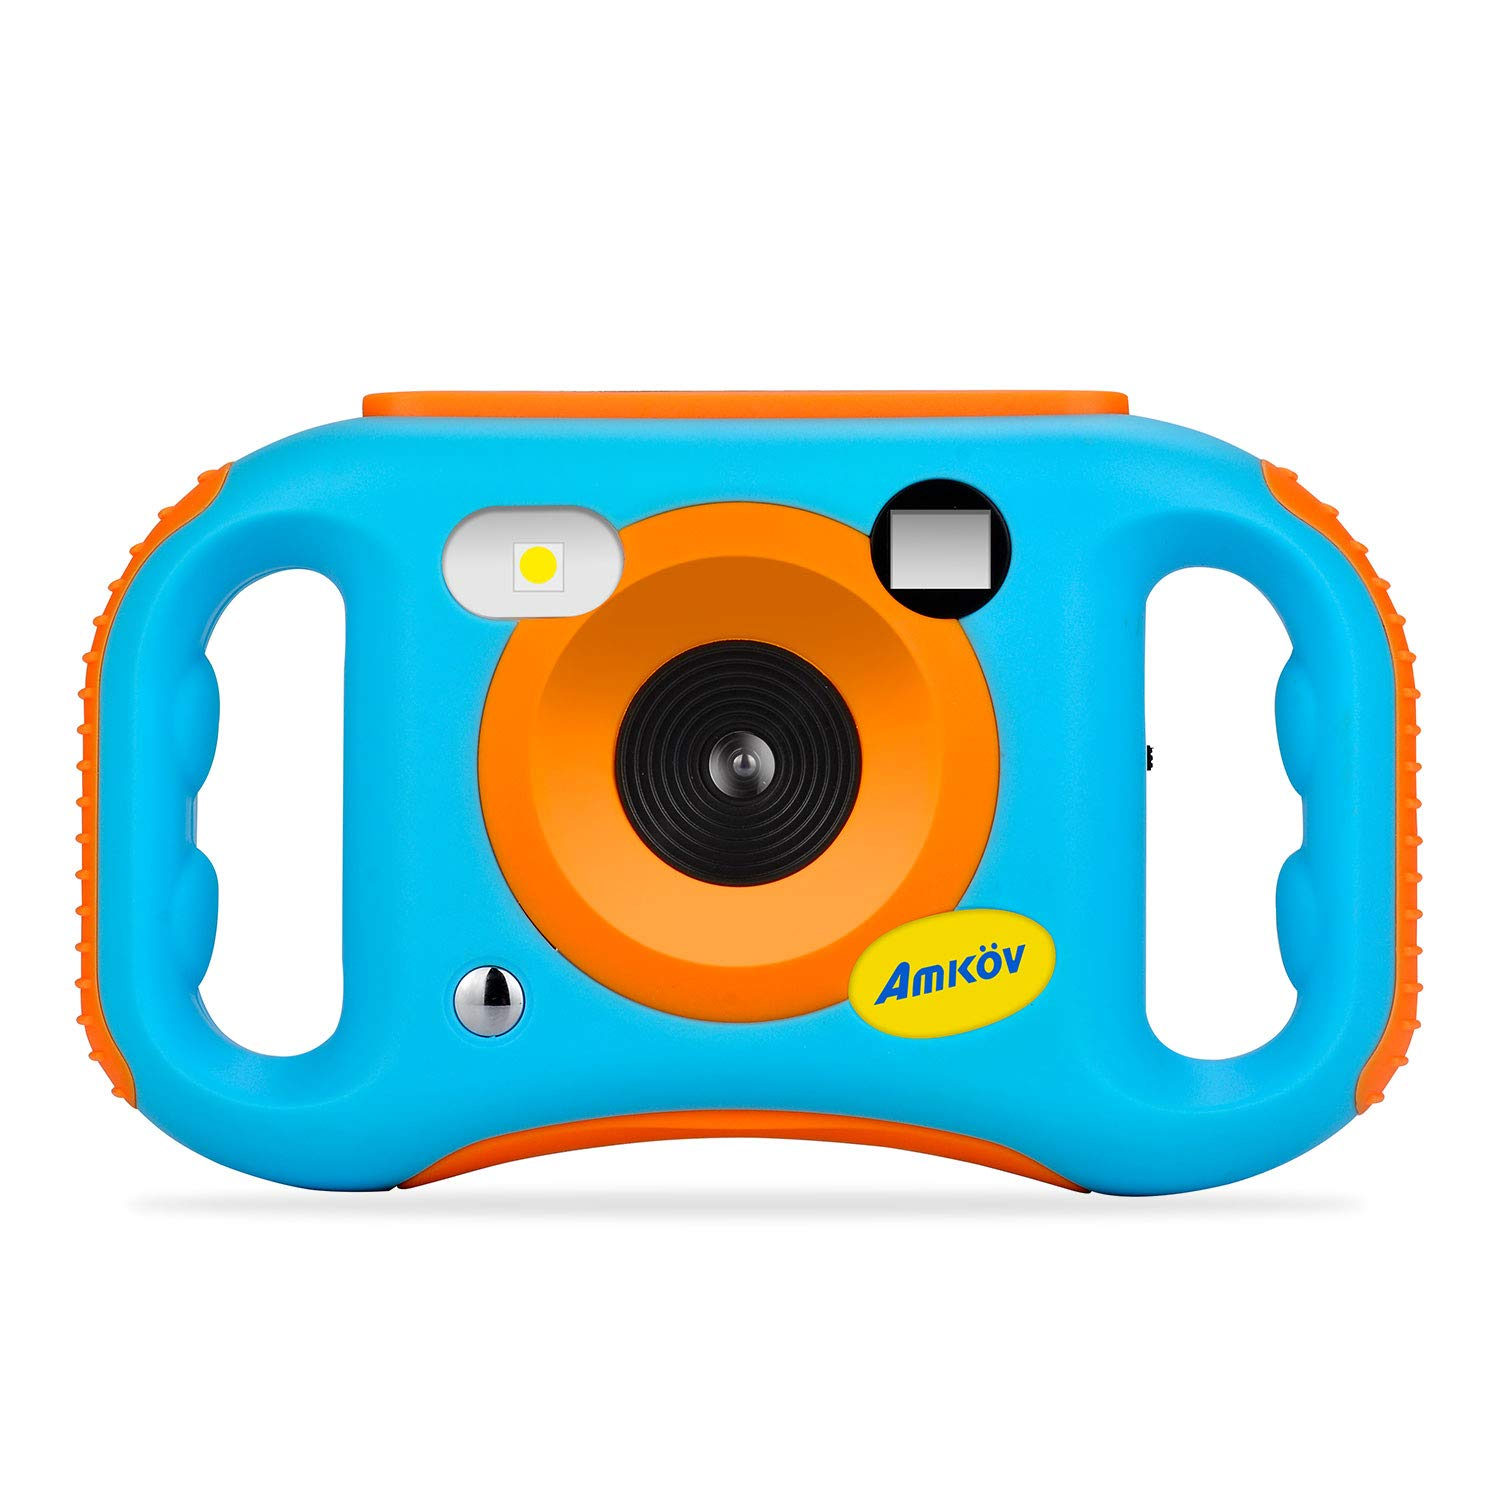 AMKOV WiFi Kids Camera Rechargeable 1080P HD Digital Children Camcorders with 1.77 Inch LCD Screen, 7-Color Filter Effect, Flash and Mic for Girls/Boys